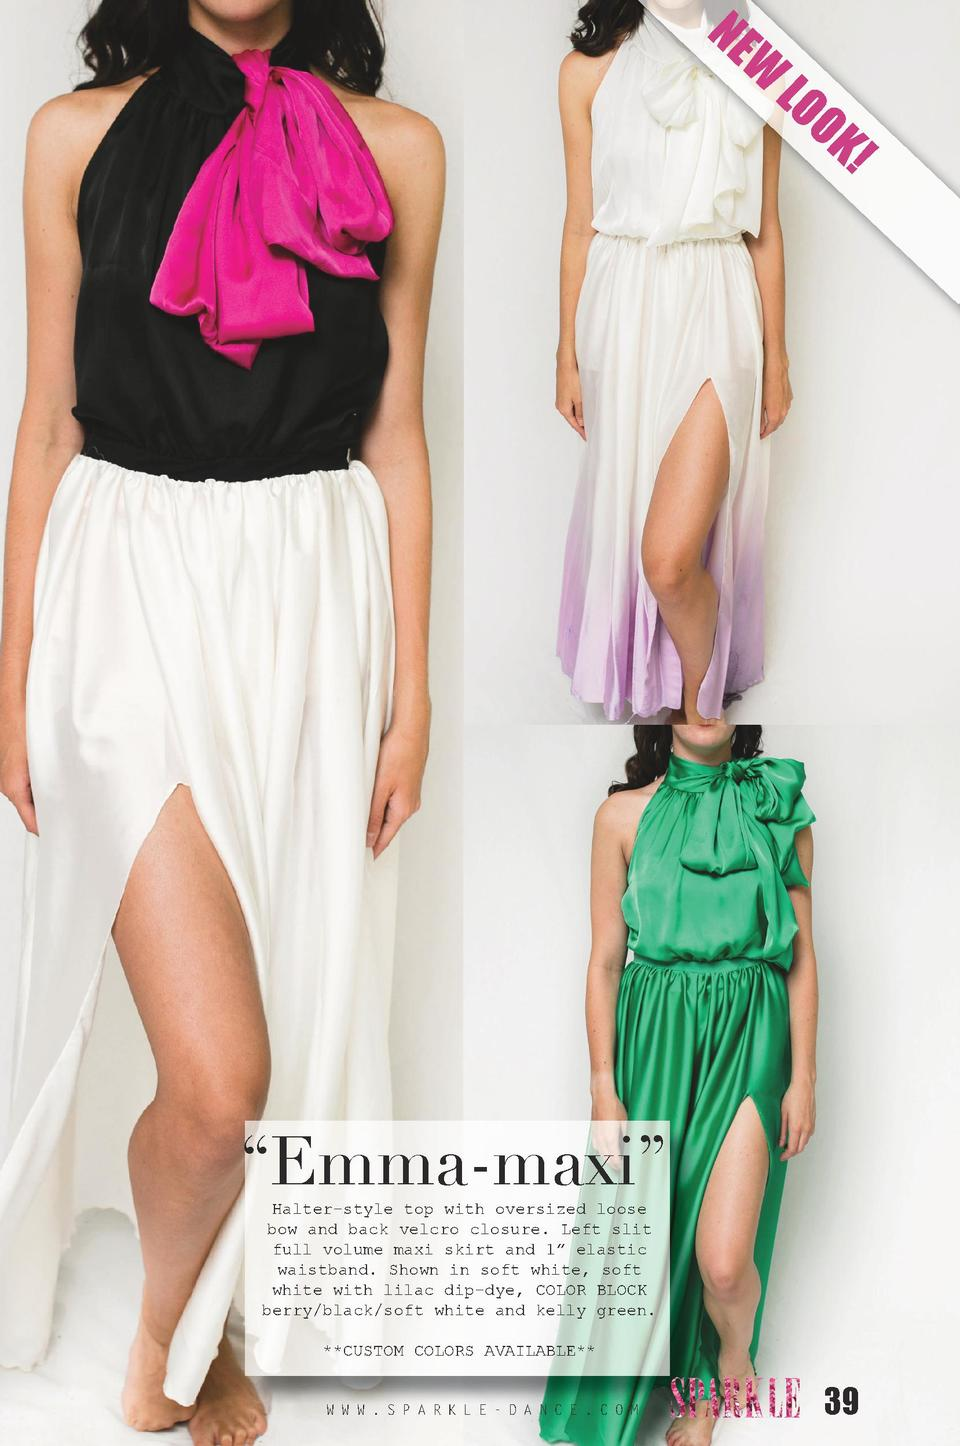 NE  W  LO O  K      Emma-maxi    Halter-style top with oversized loose bow and back velcro closure. Left slit full volume ...